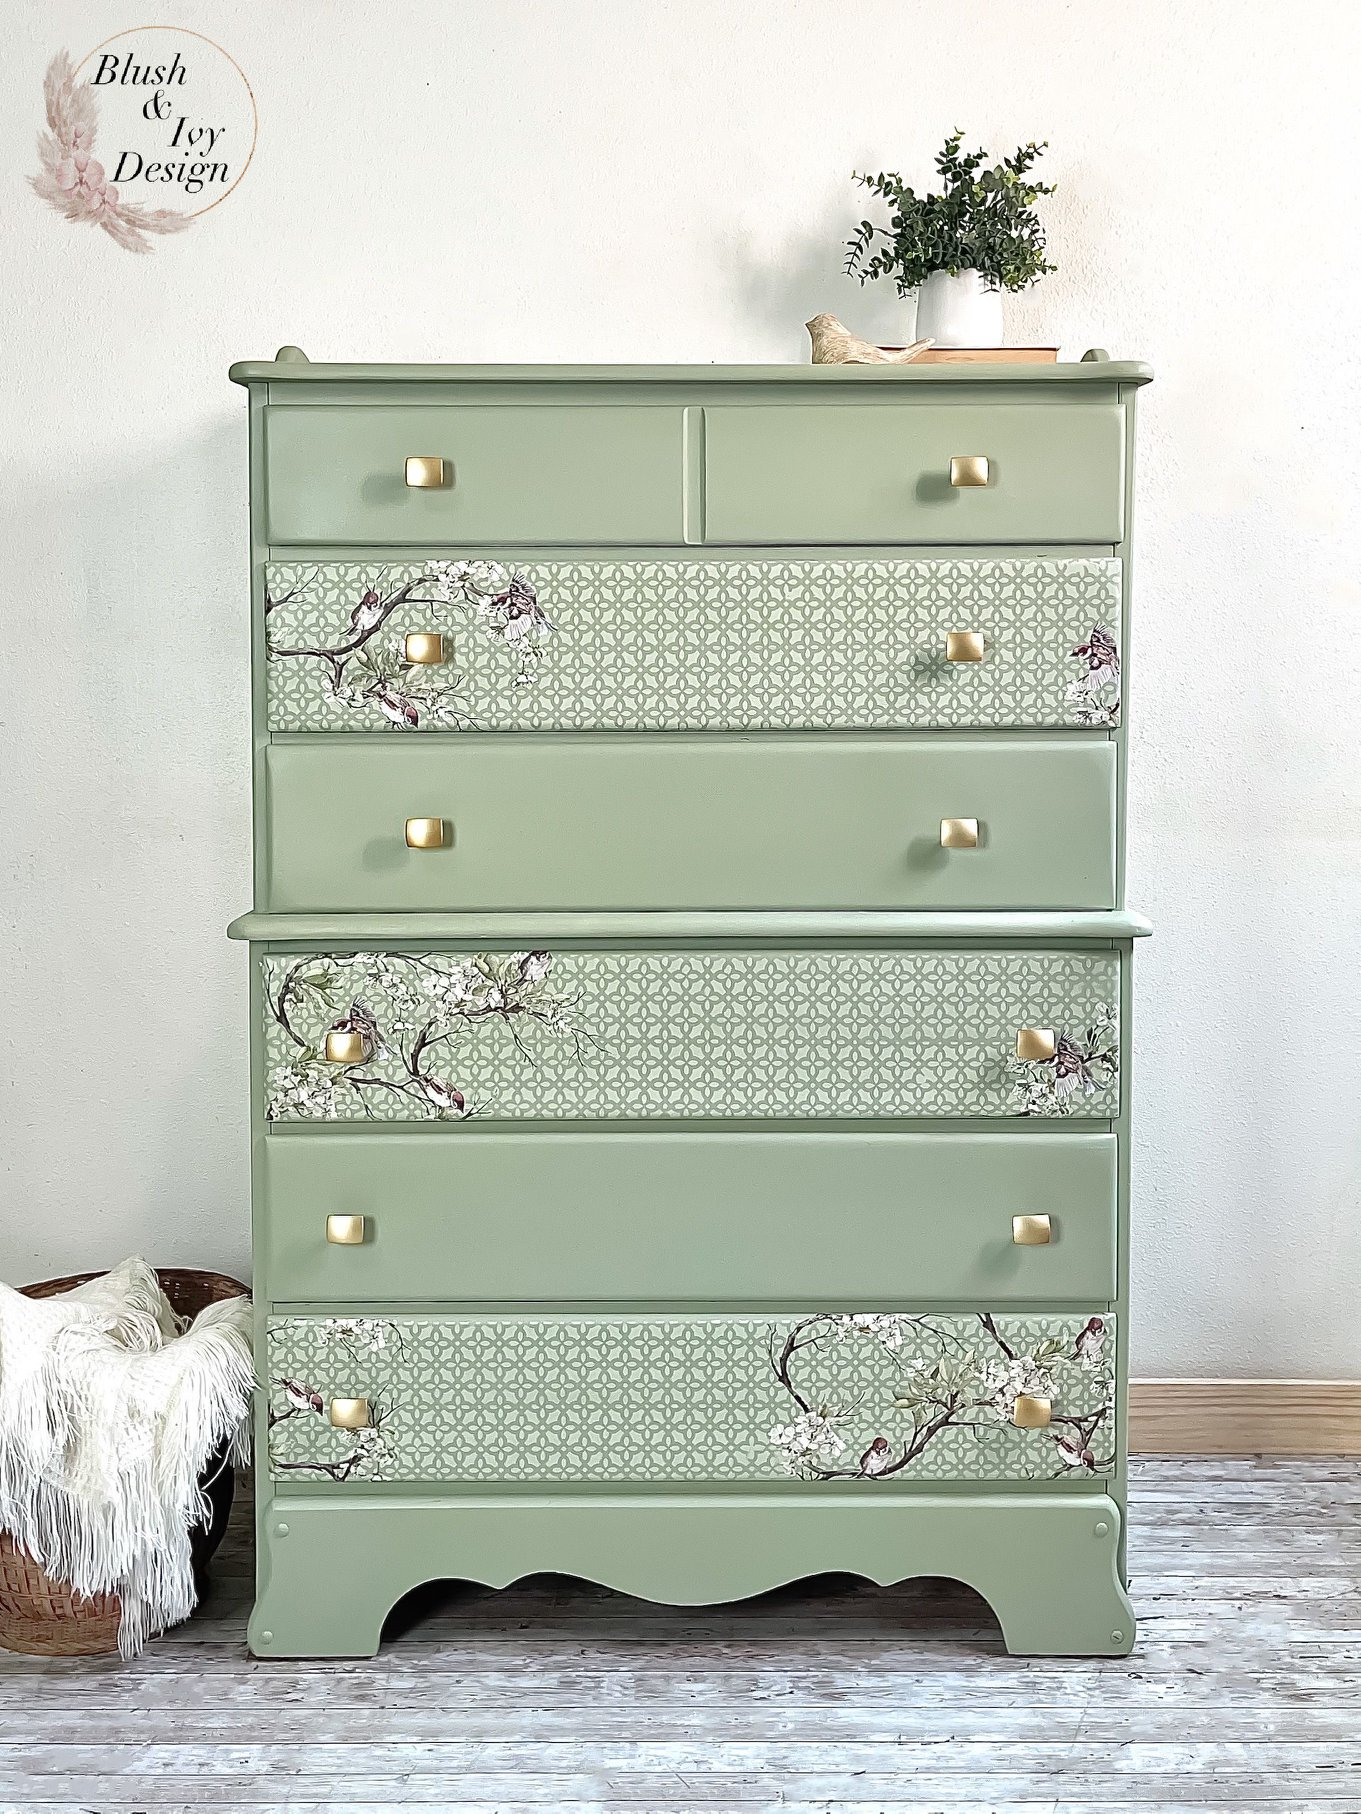 Tall 6 Drawer Dresser in Sage Advice with Floral Stencil